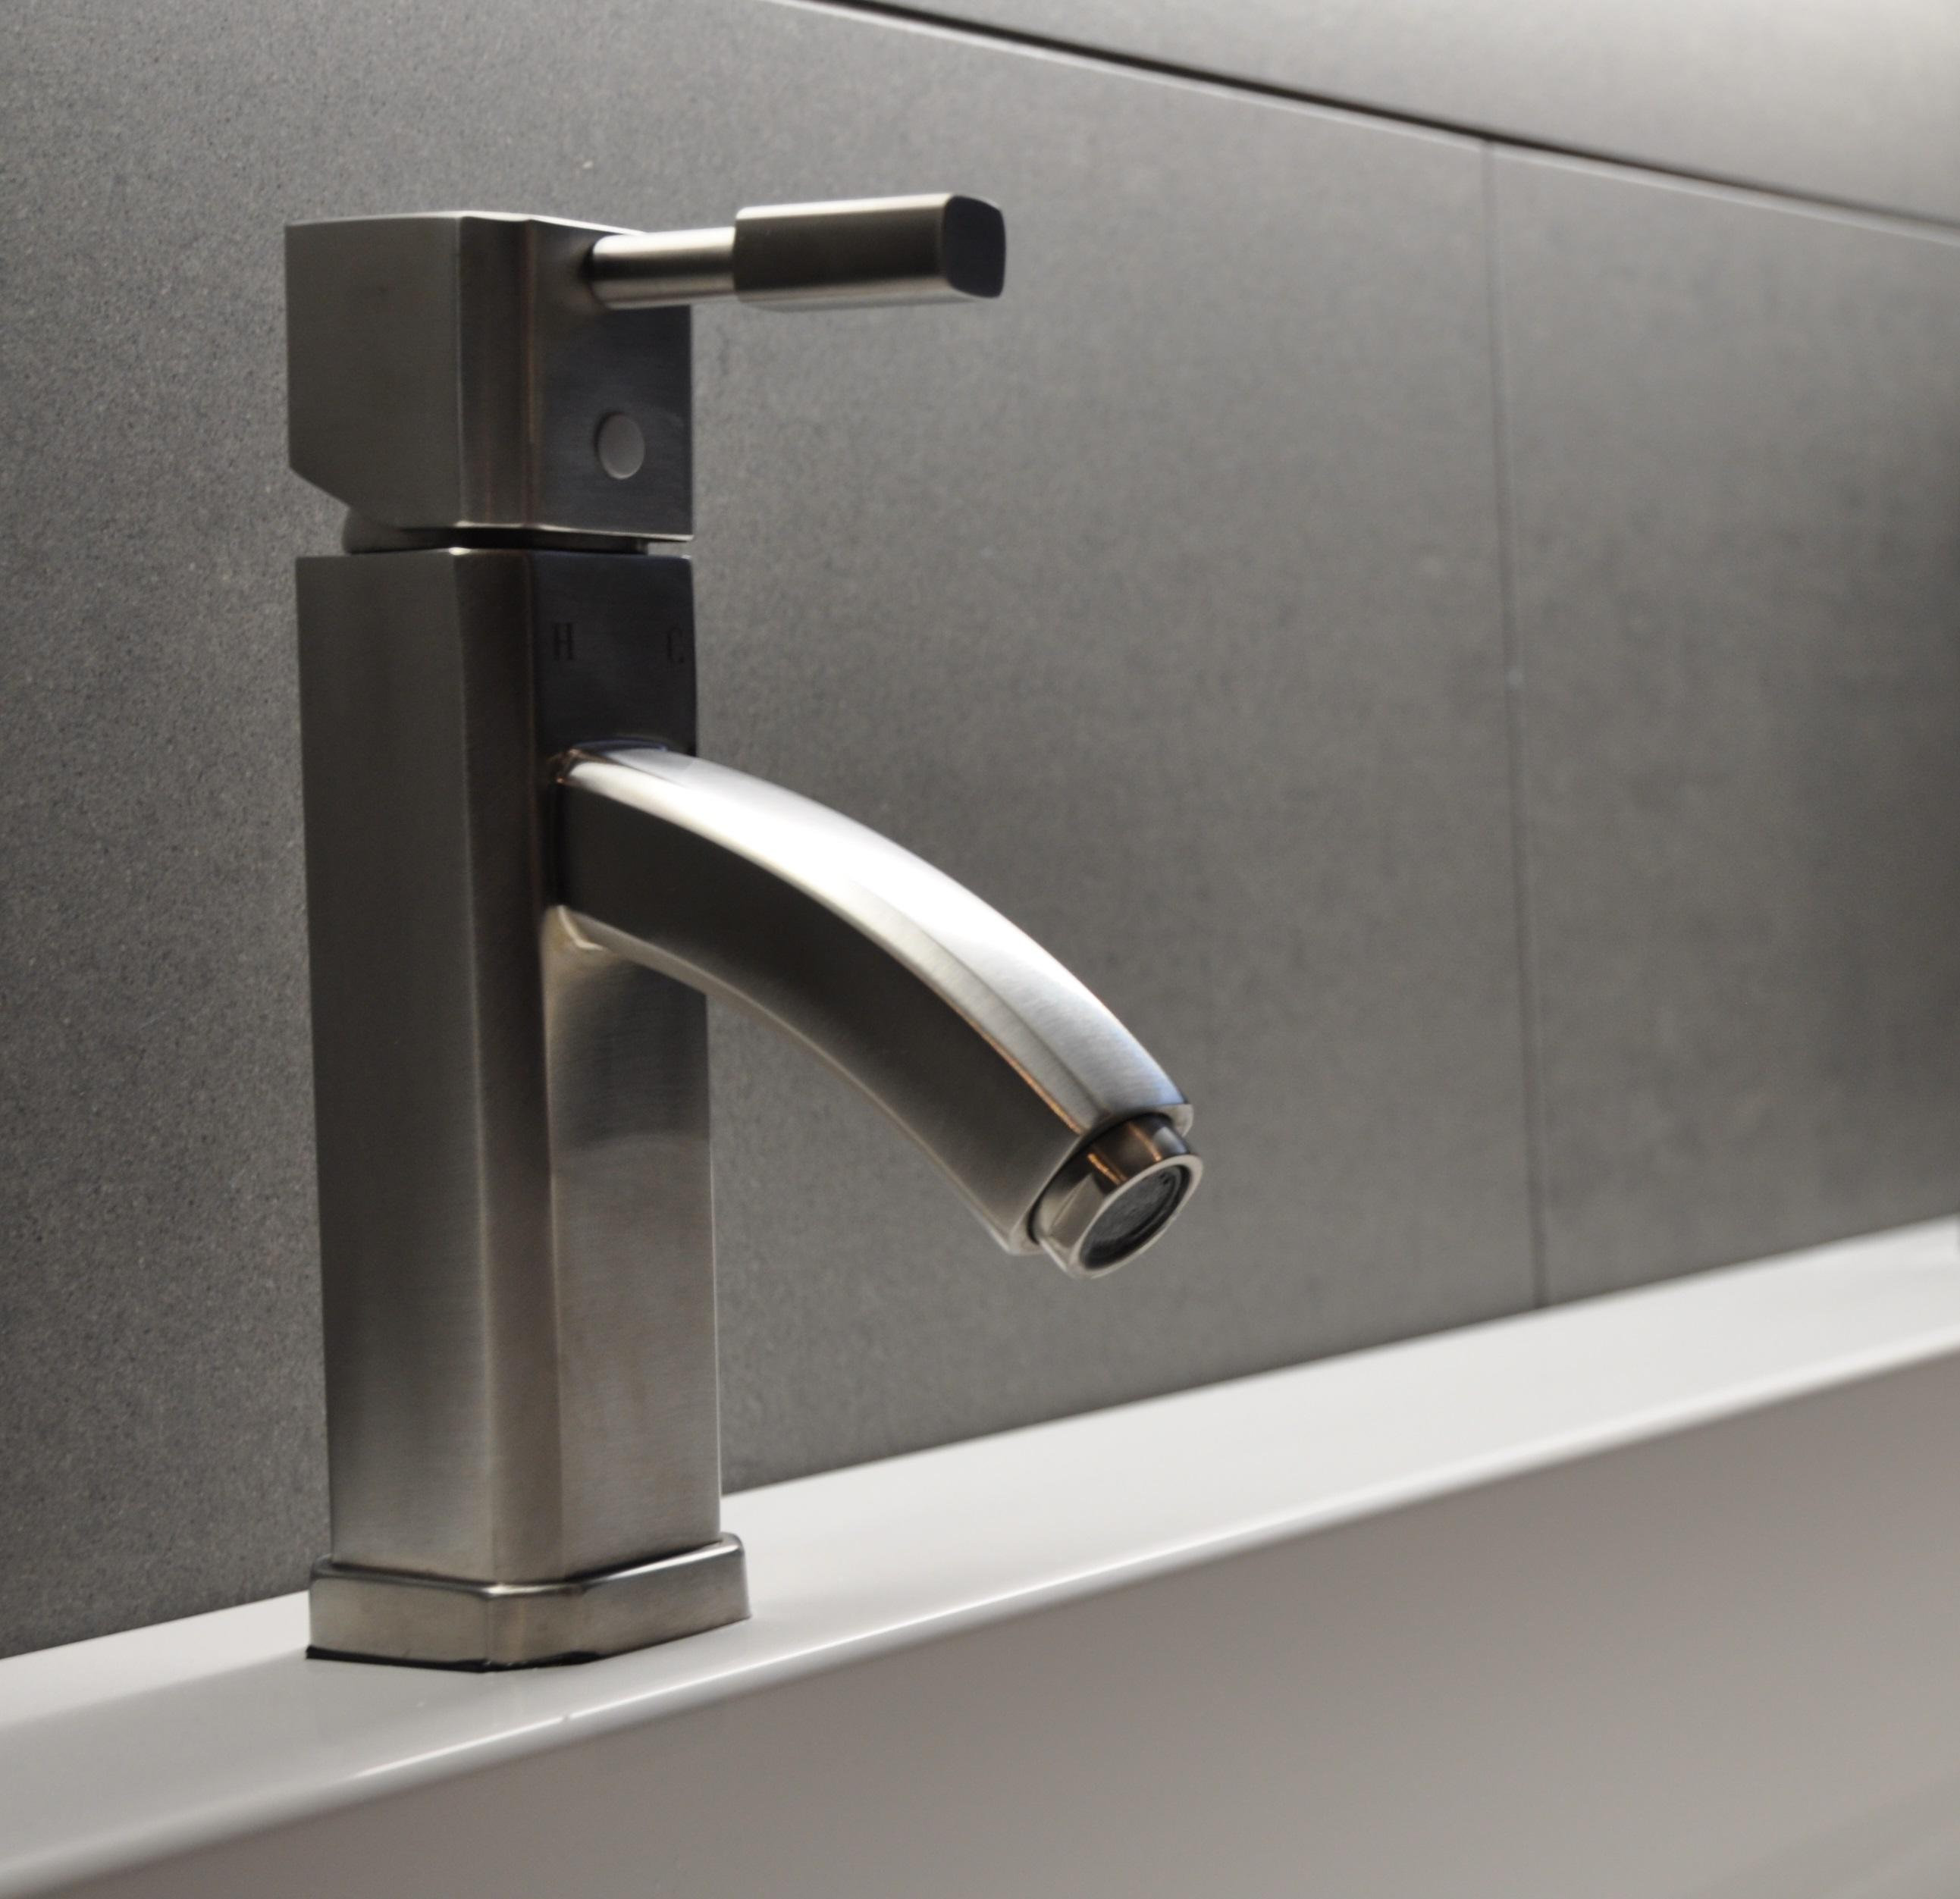 basin_outdoor_tap_kitchen_stainless_steel_luxury_outdoor_modern_high_quality_kent_uk